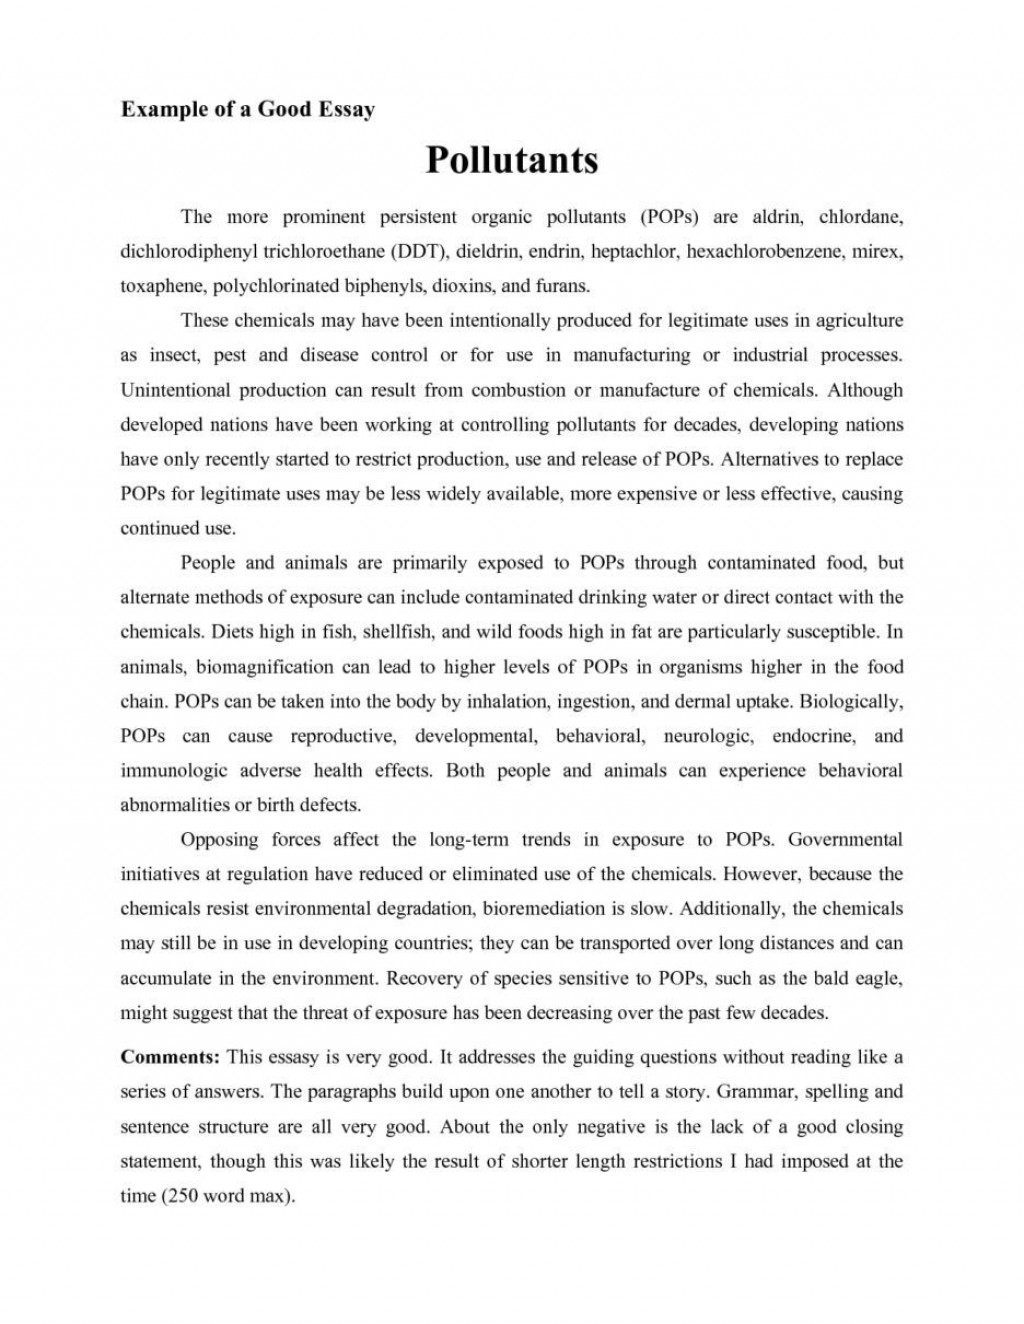 002 Essay Example How To Write Good Surprising Essays A Issue Gre For Ap English Large